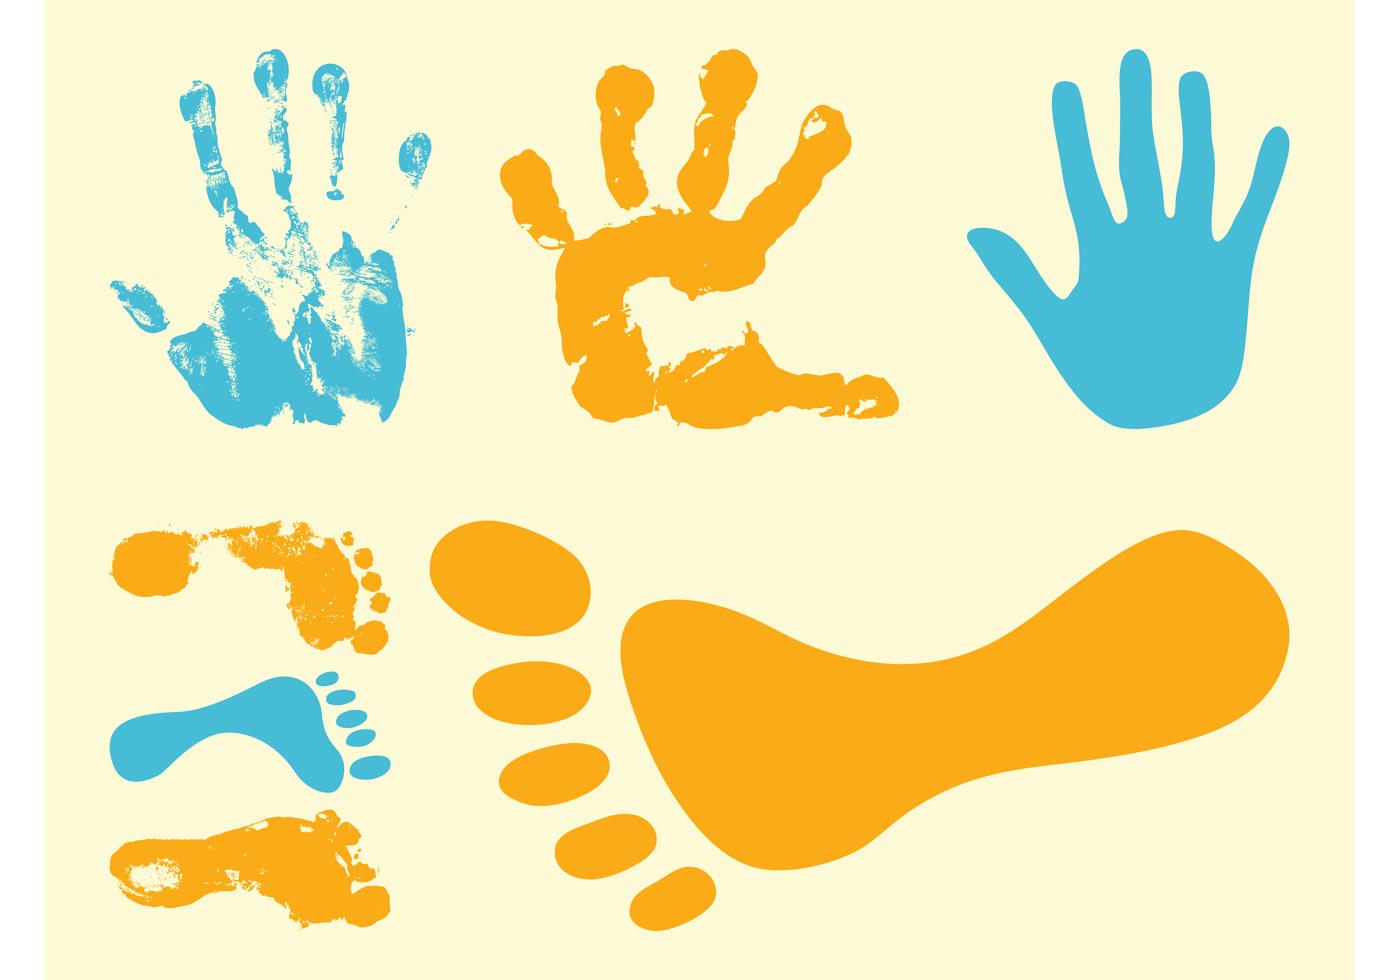 Footprints And Hand Prints - Download Free Vector Art, Stock ...